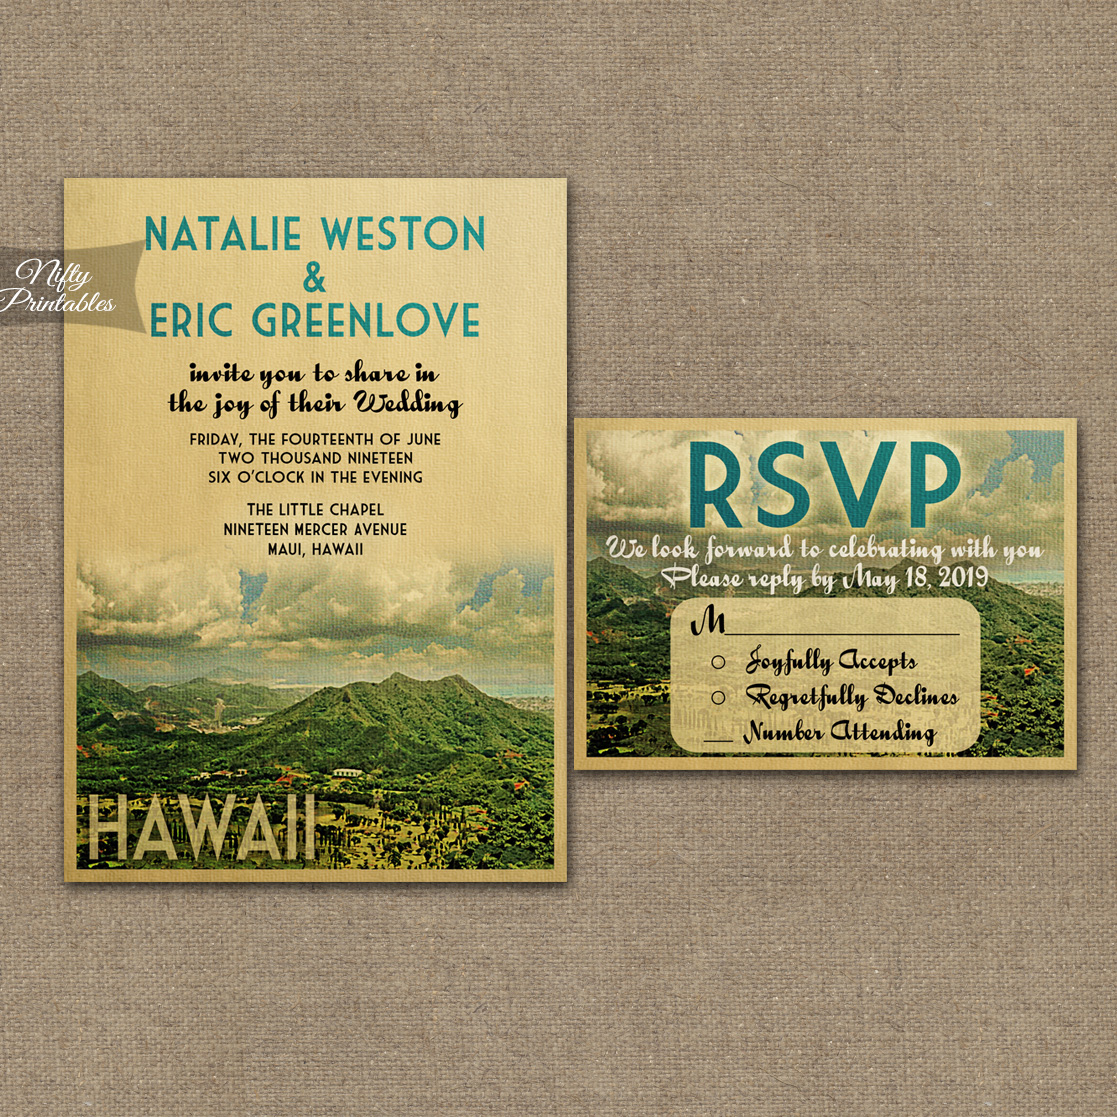 Hawaii Wedding Invitations is an amazing ideas you had to choose for invitation design